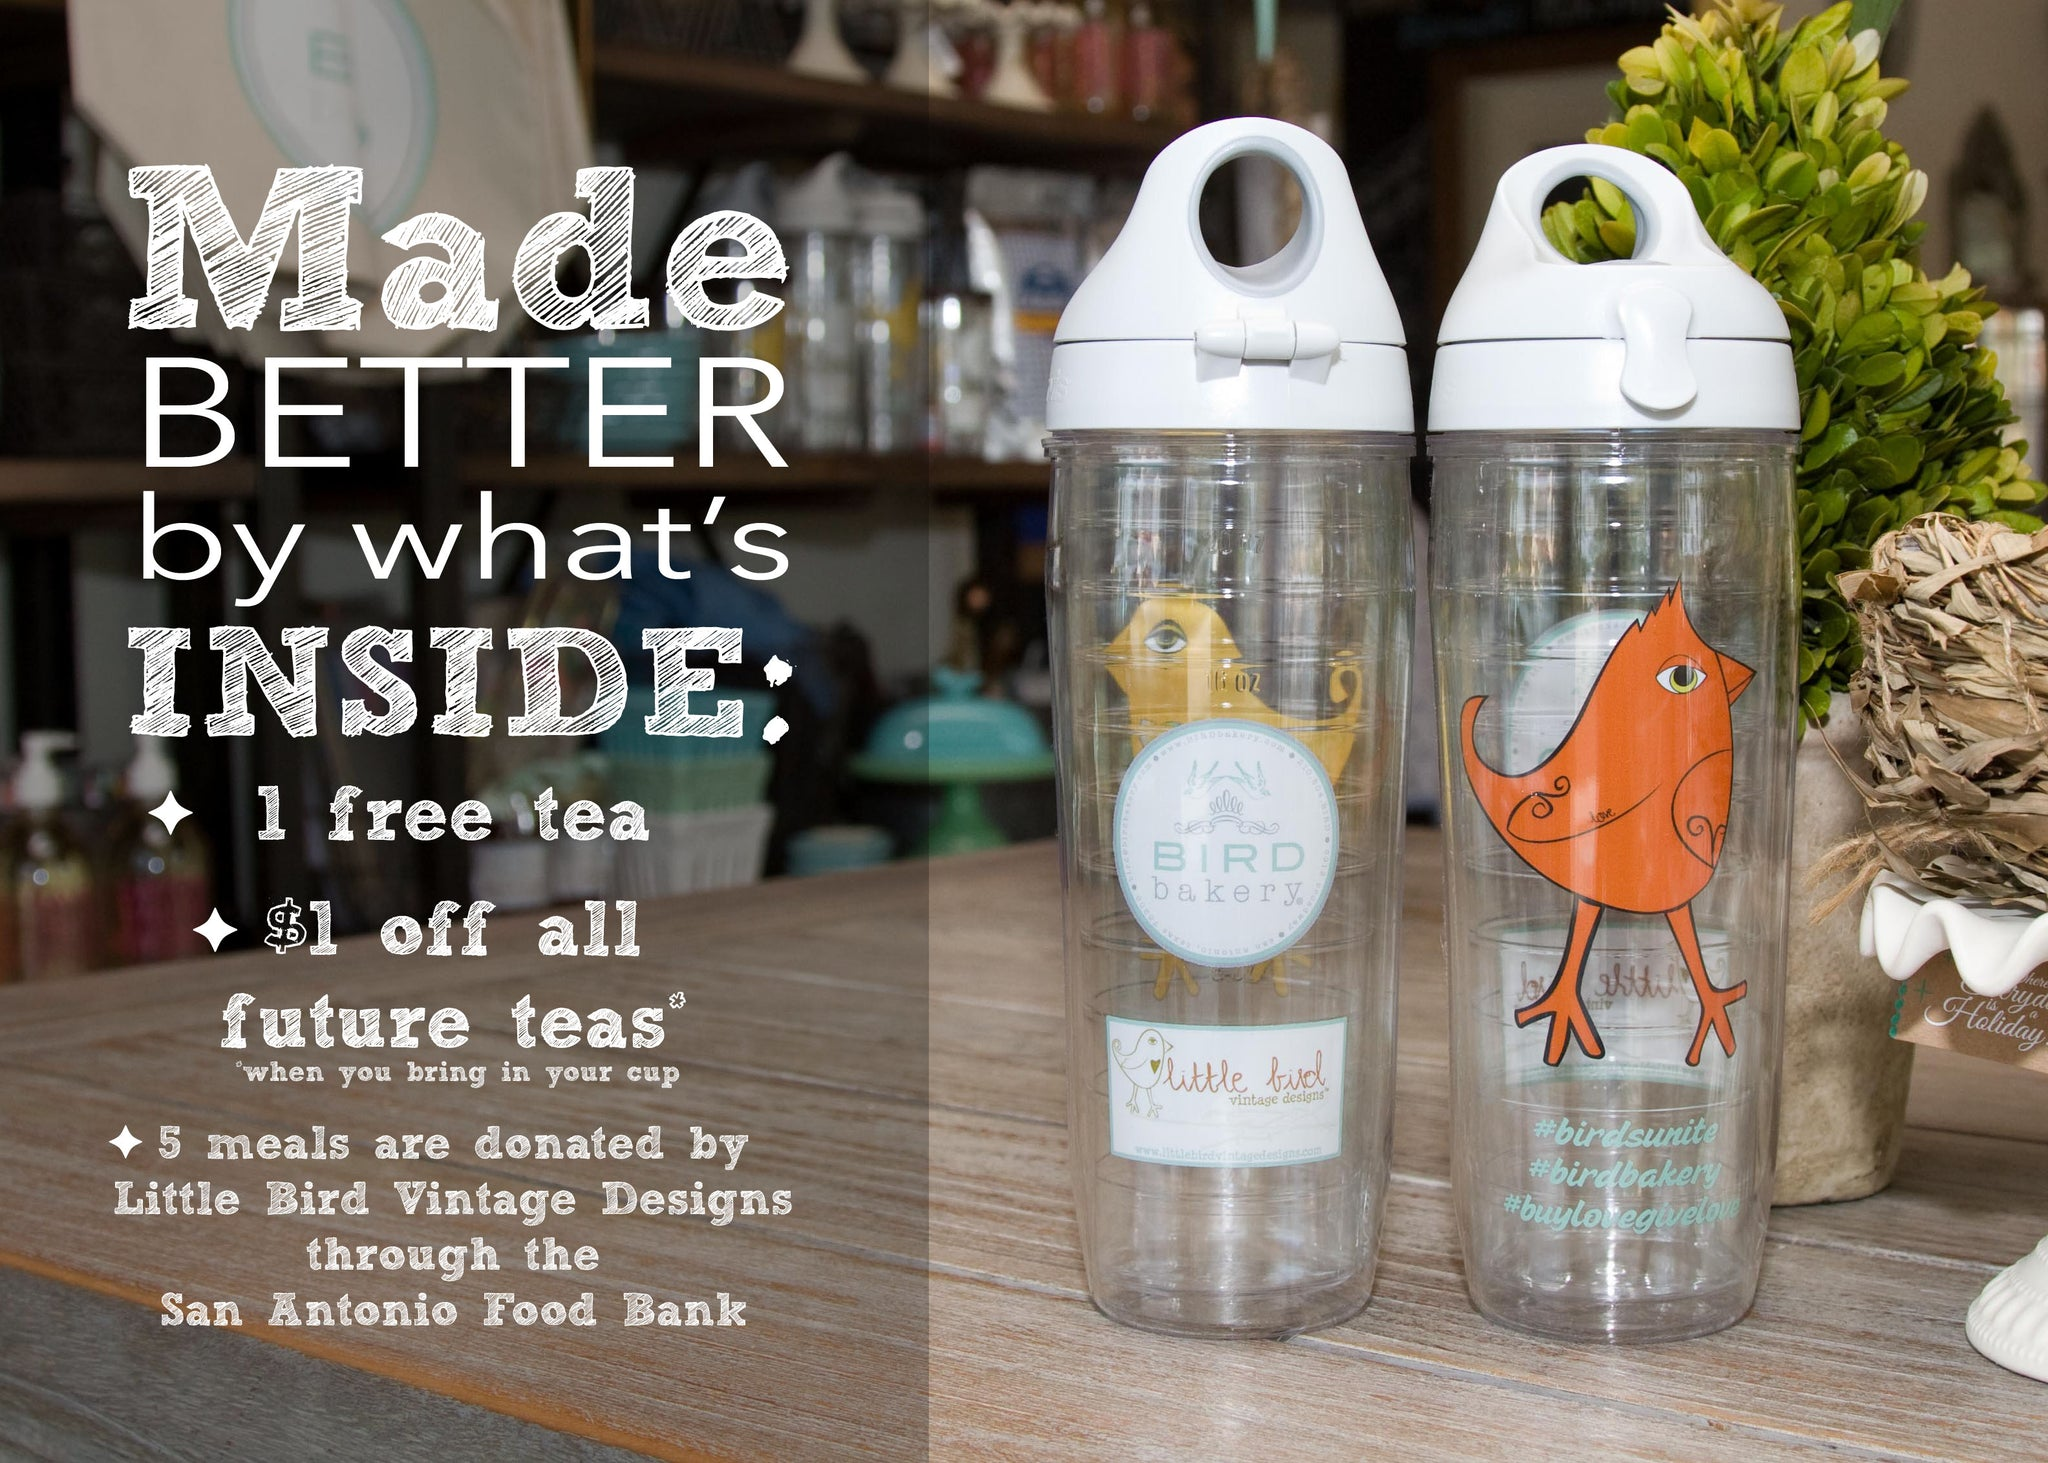 EXCLUSIVE BIRD Bakery & Little Bird Tervis